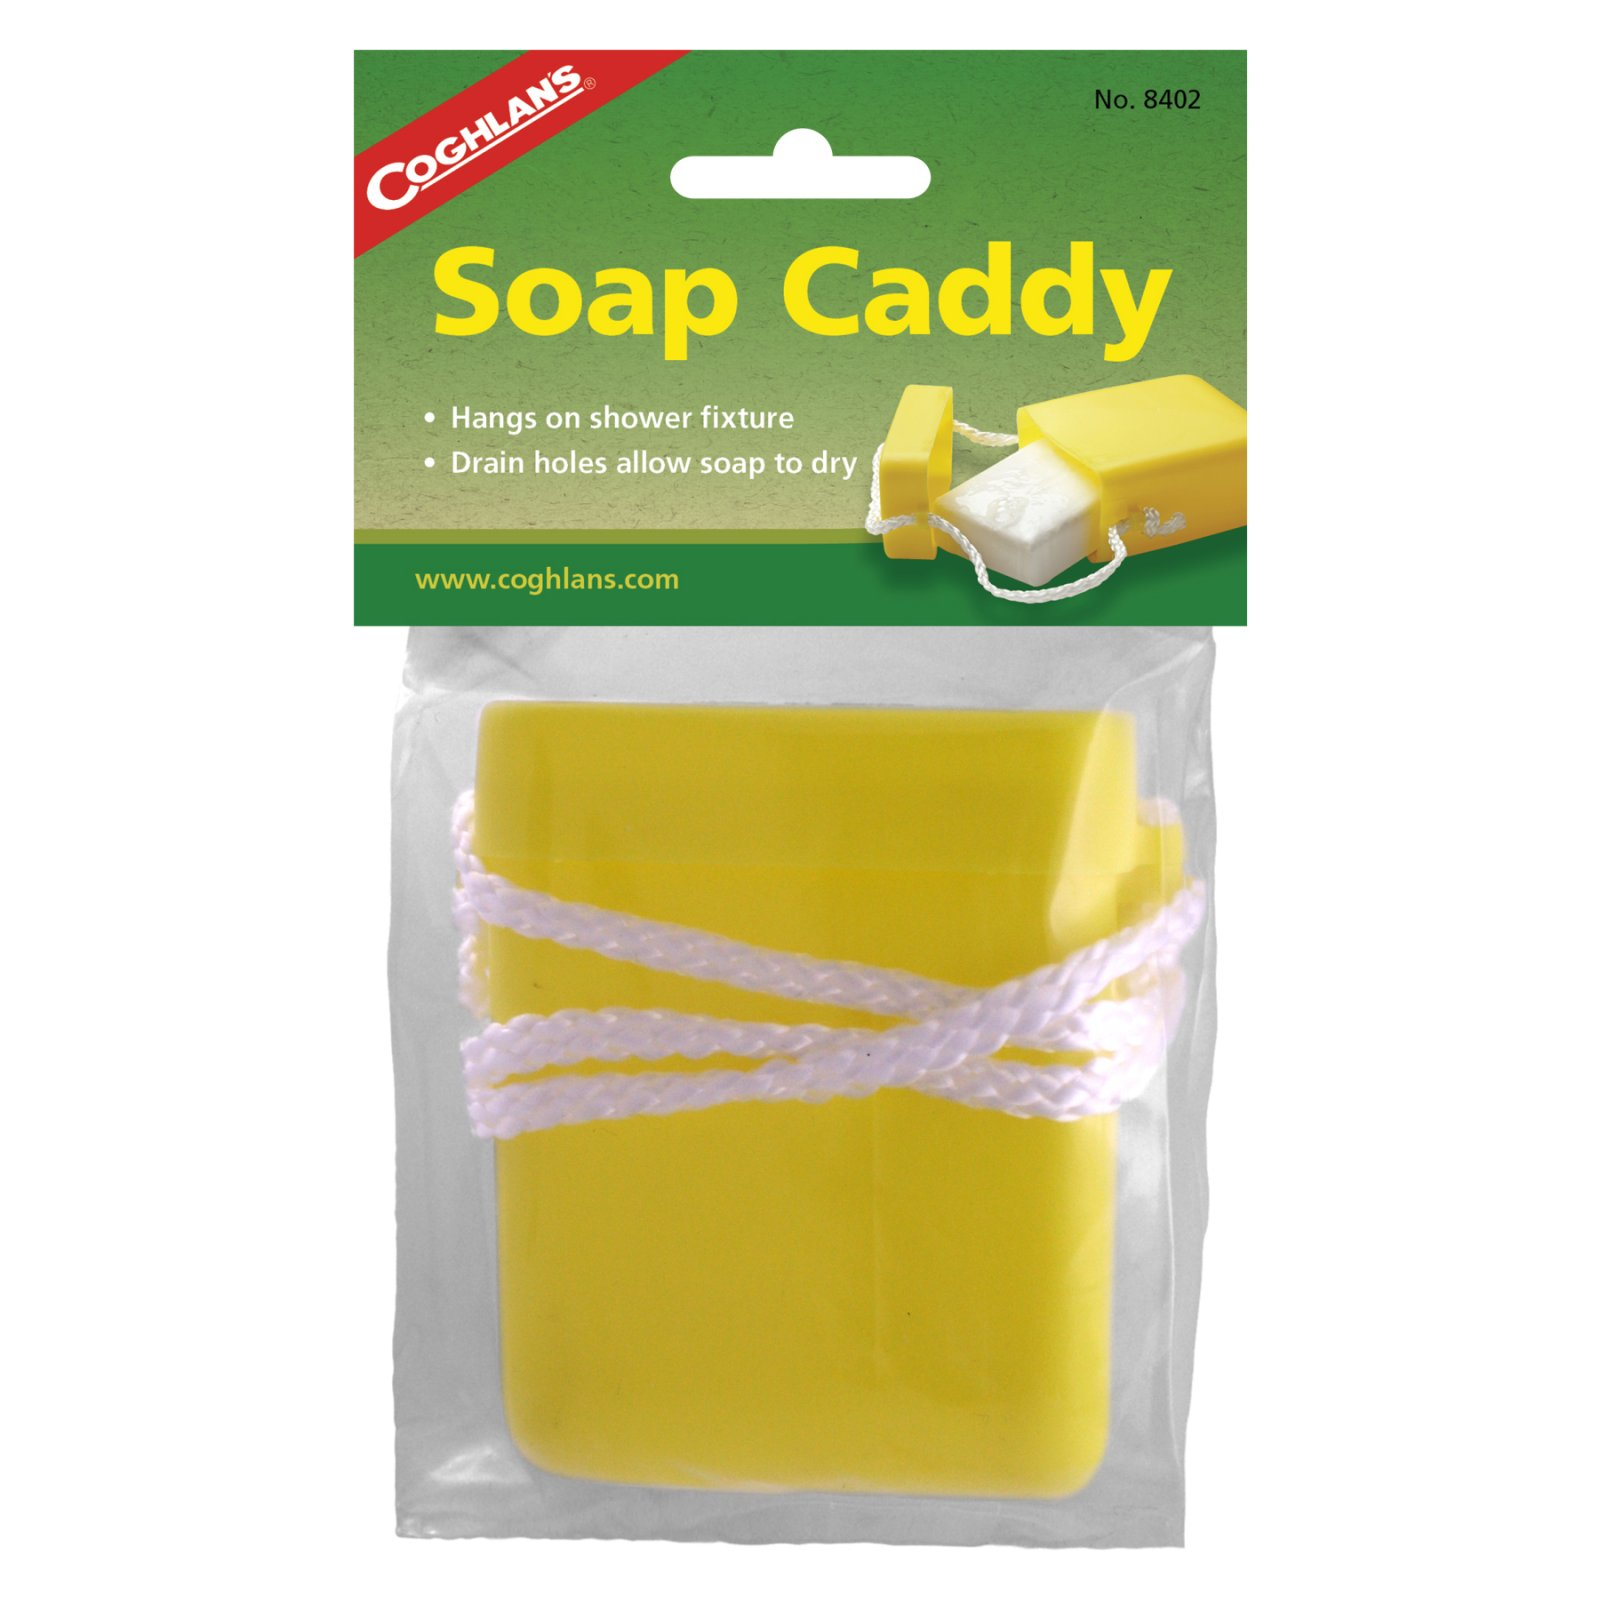 Soap Caddy (Soap on a Rope) Coghlan's  8402